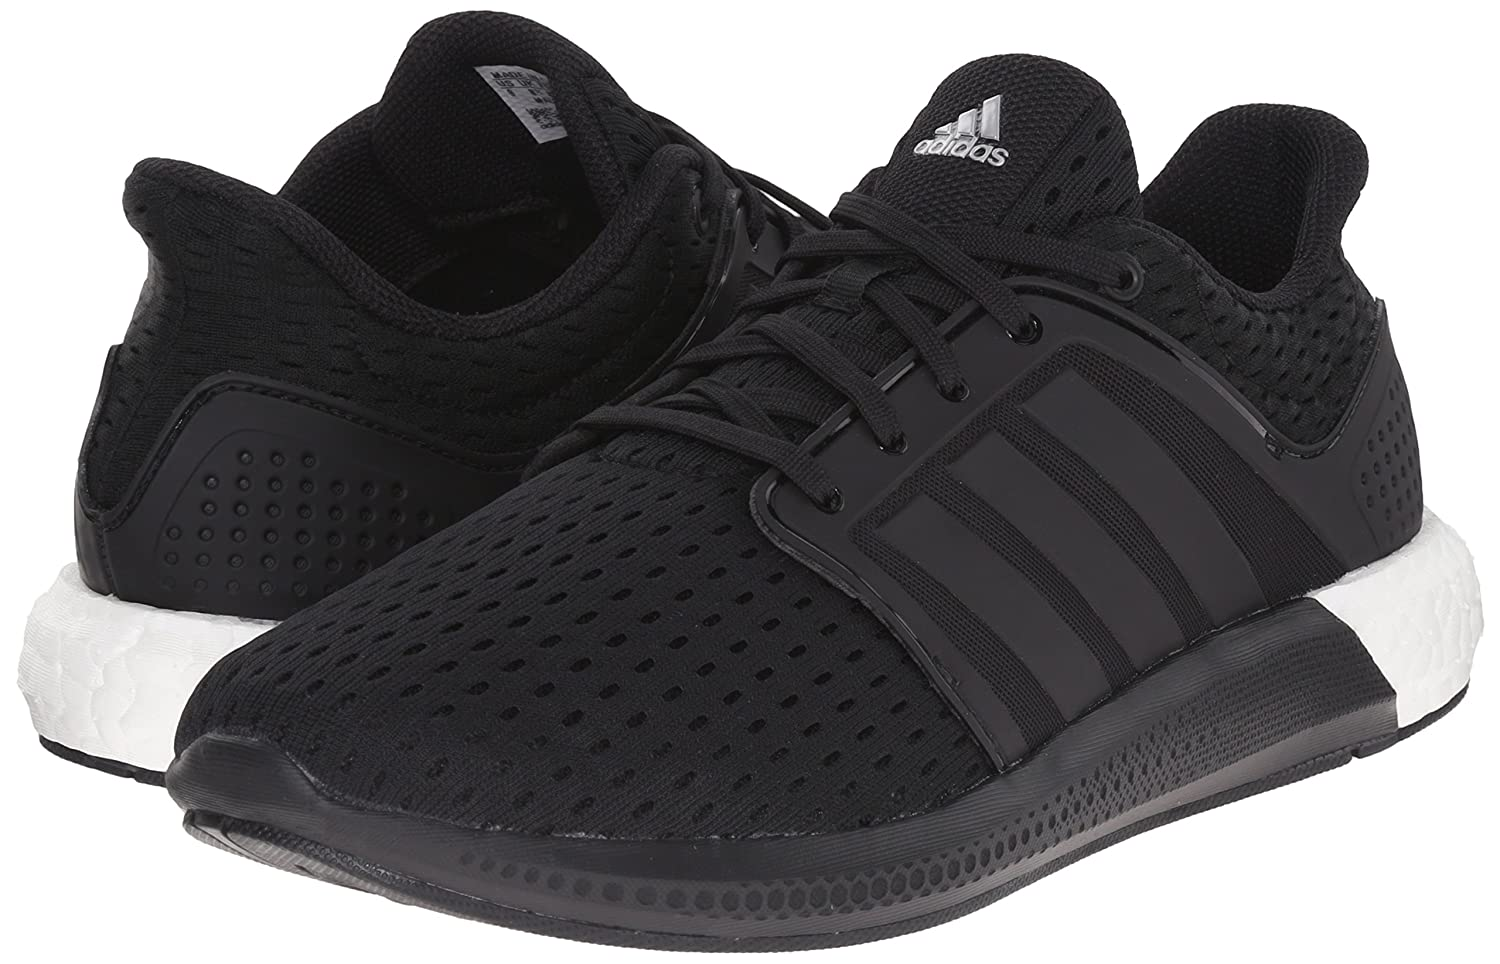 best sneakers befa8 a5b29 ... italy adidas performance solar boost m running shoe collegiate navy  white collegiate royal 4 m us ...